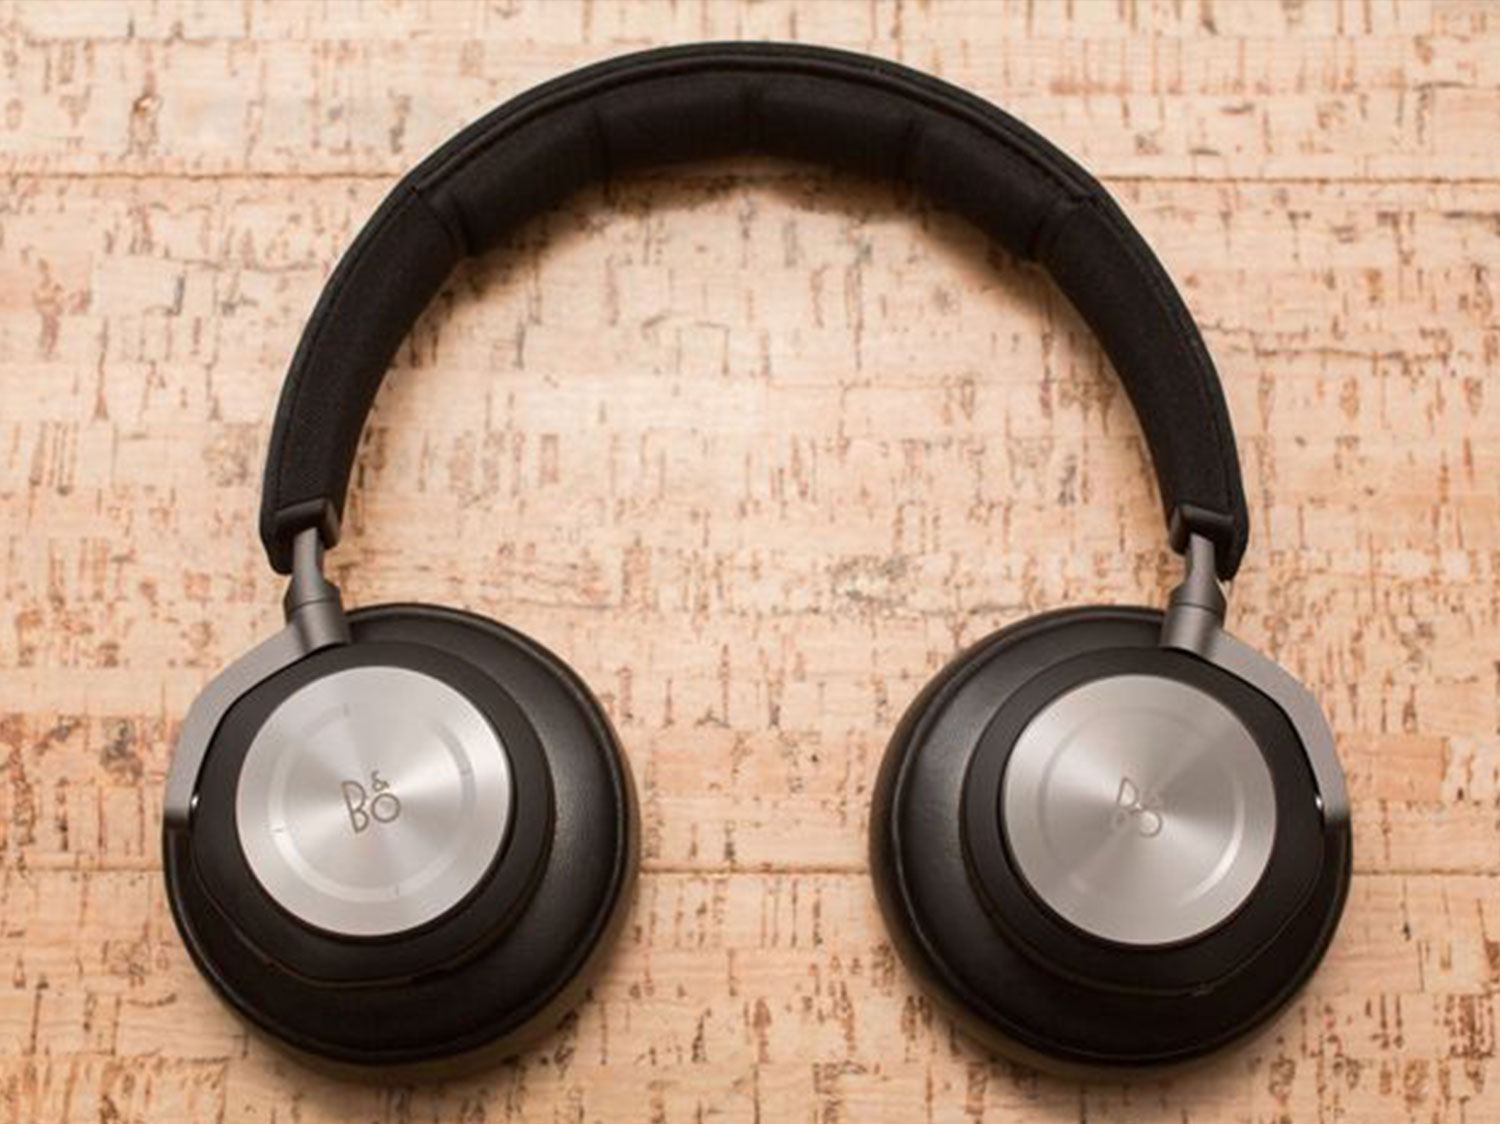 b-o-play-beoplay-h7-by-bang-olufsen-07